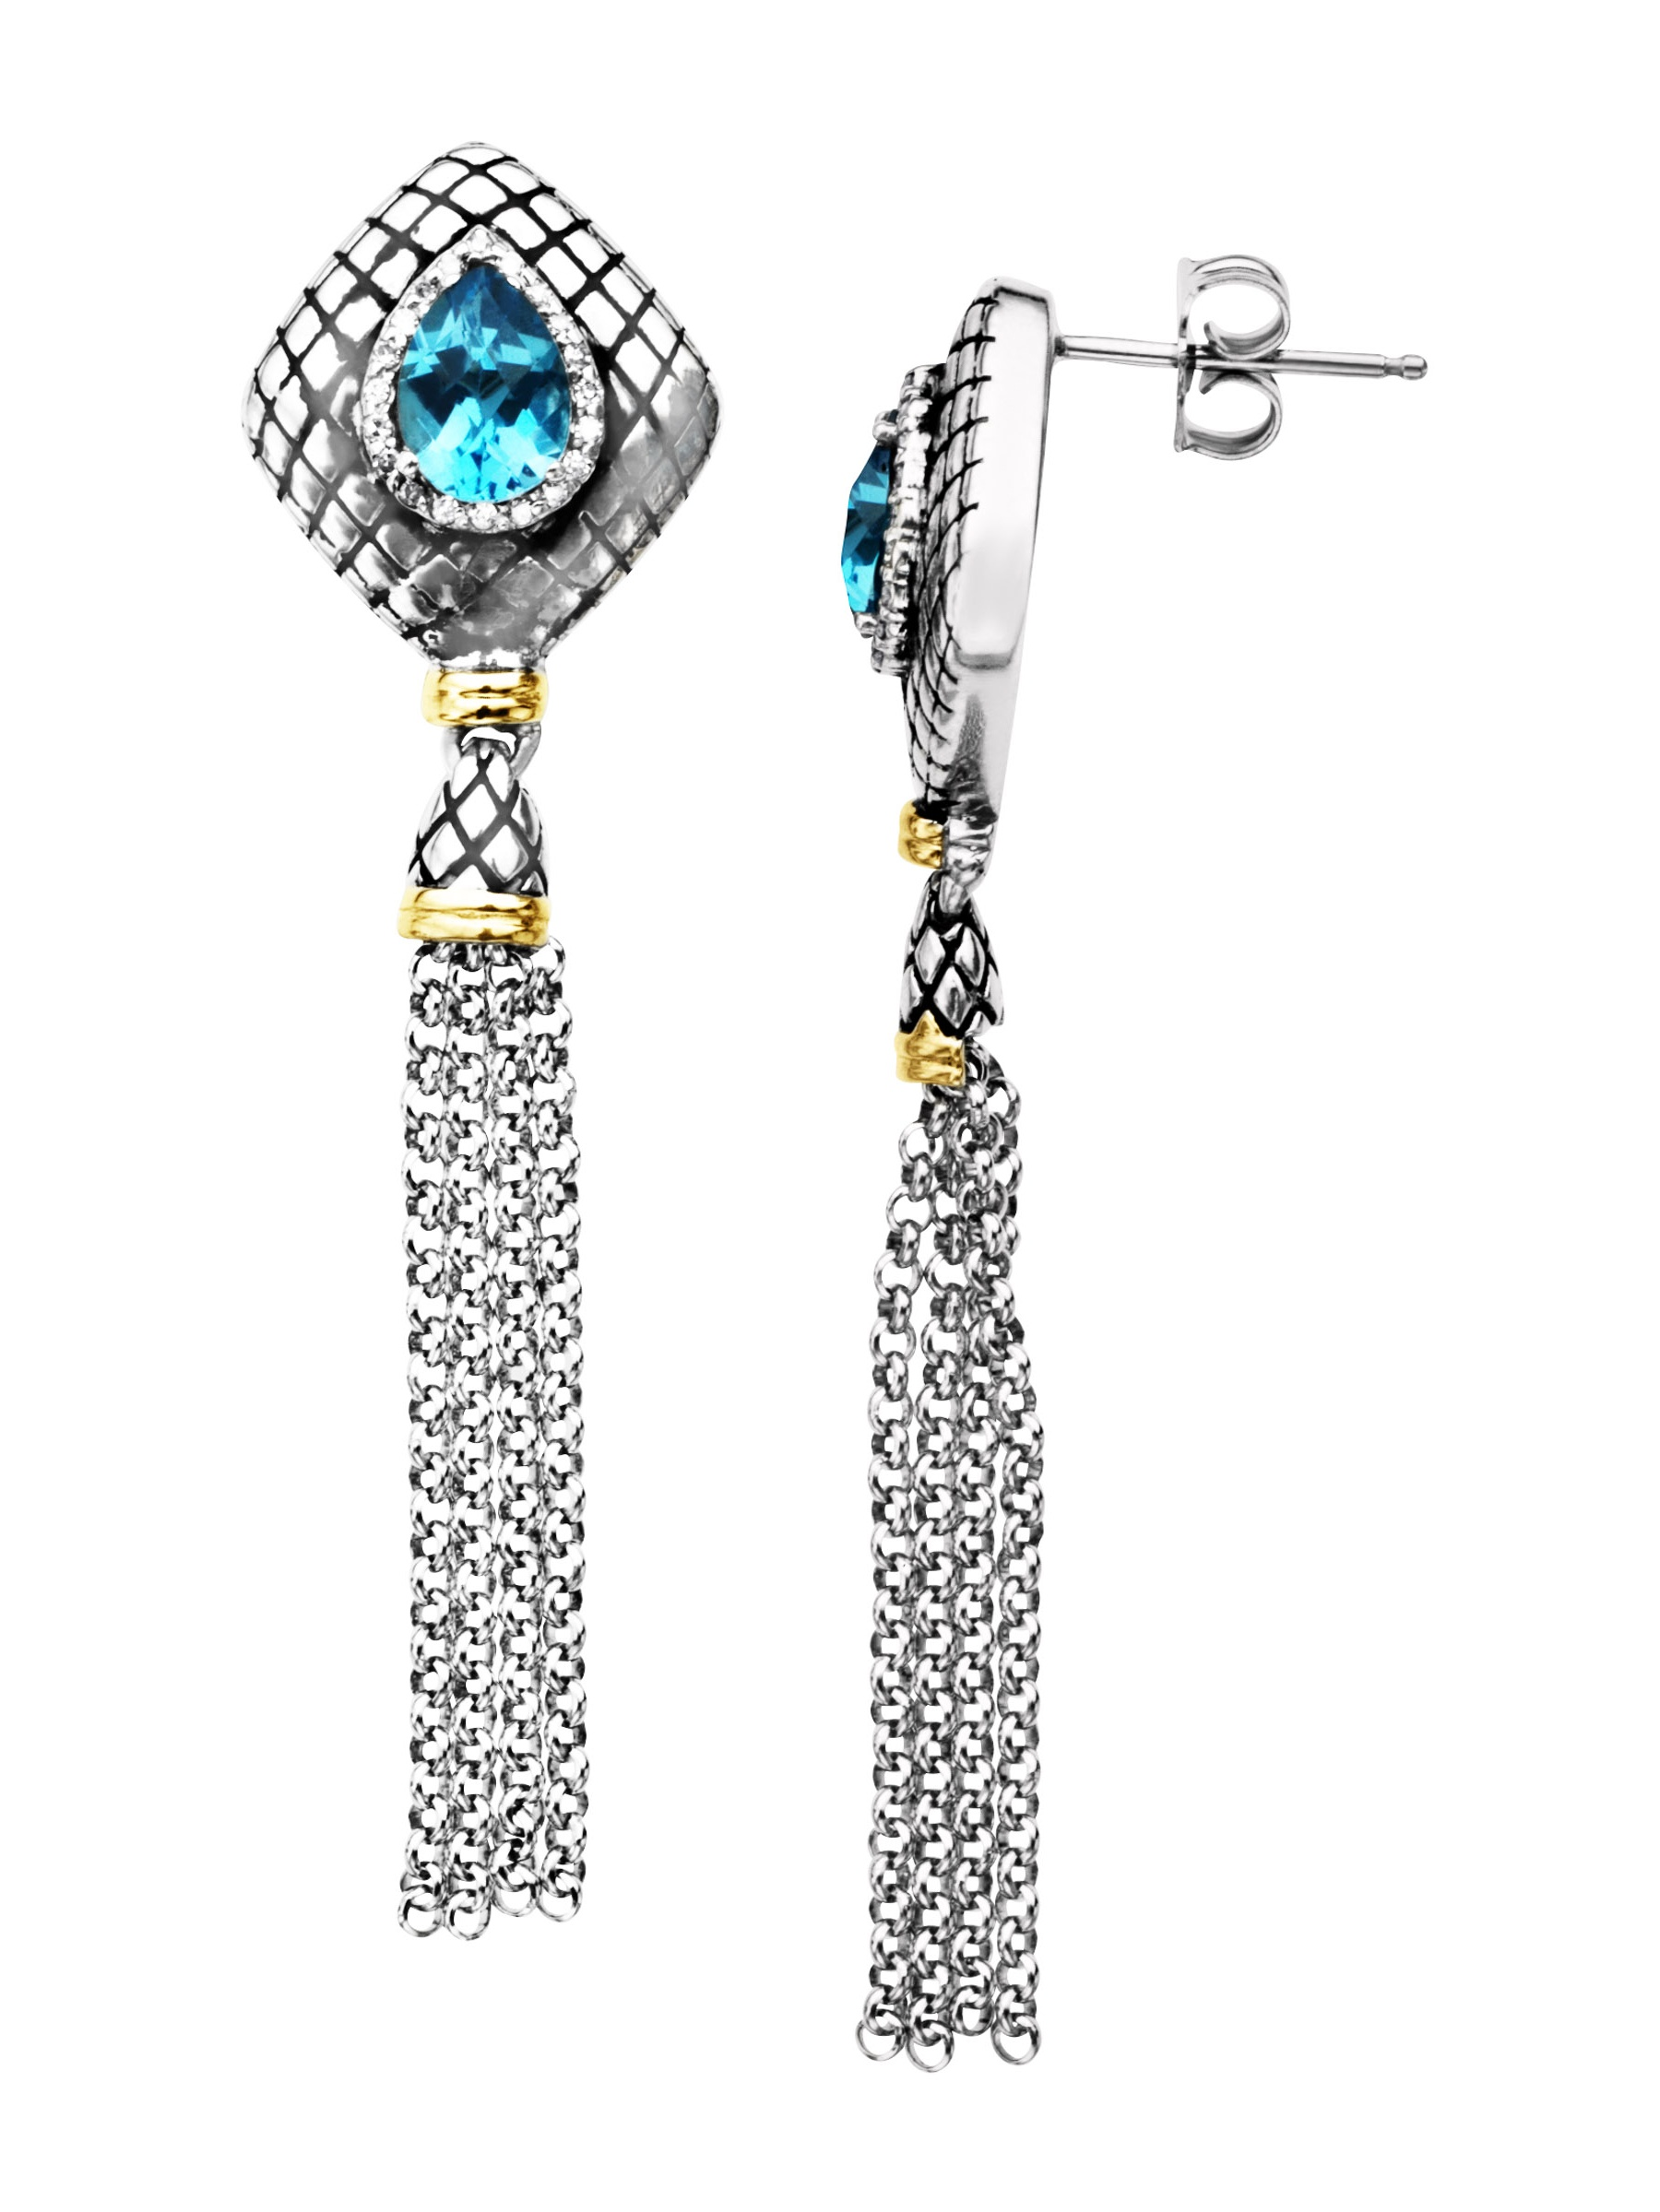 2 ct Natural Swiss Blue Topaz and 1 8 ct Diamond Drop Earrings in Sterling Silver and 14kt Gold by Richline Group